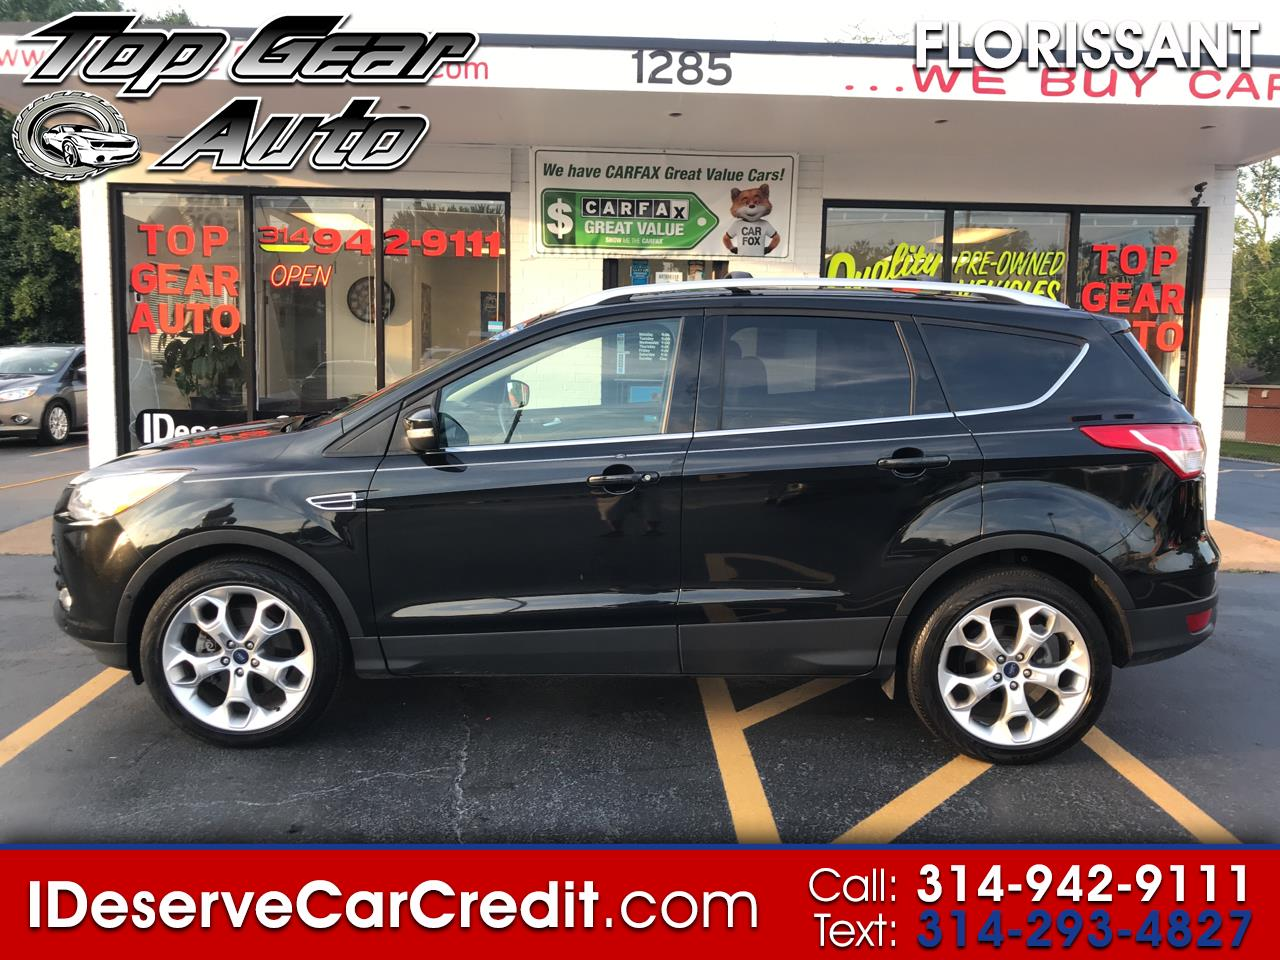 2014 Ford Escape TITANIUM 4WD 2.0L ECOBOOST! NAVIGATION LEATHER PRE